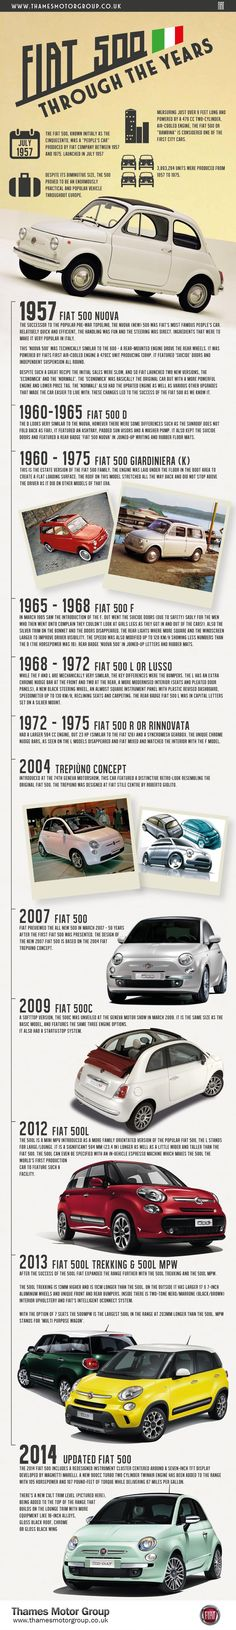 FIAT 500 Through The Years   #Fiat500 #Car #infographic #History